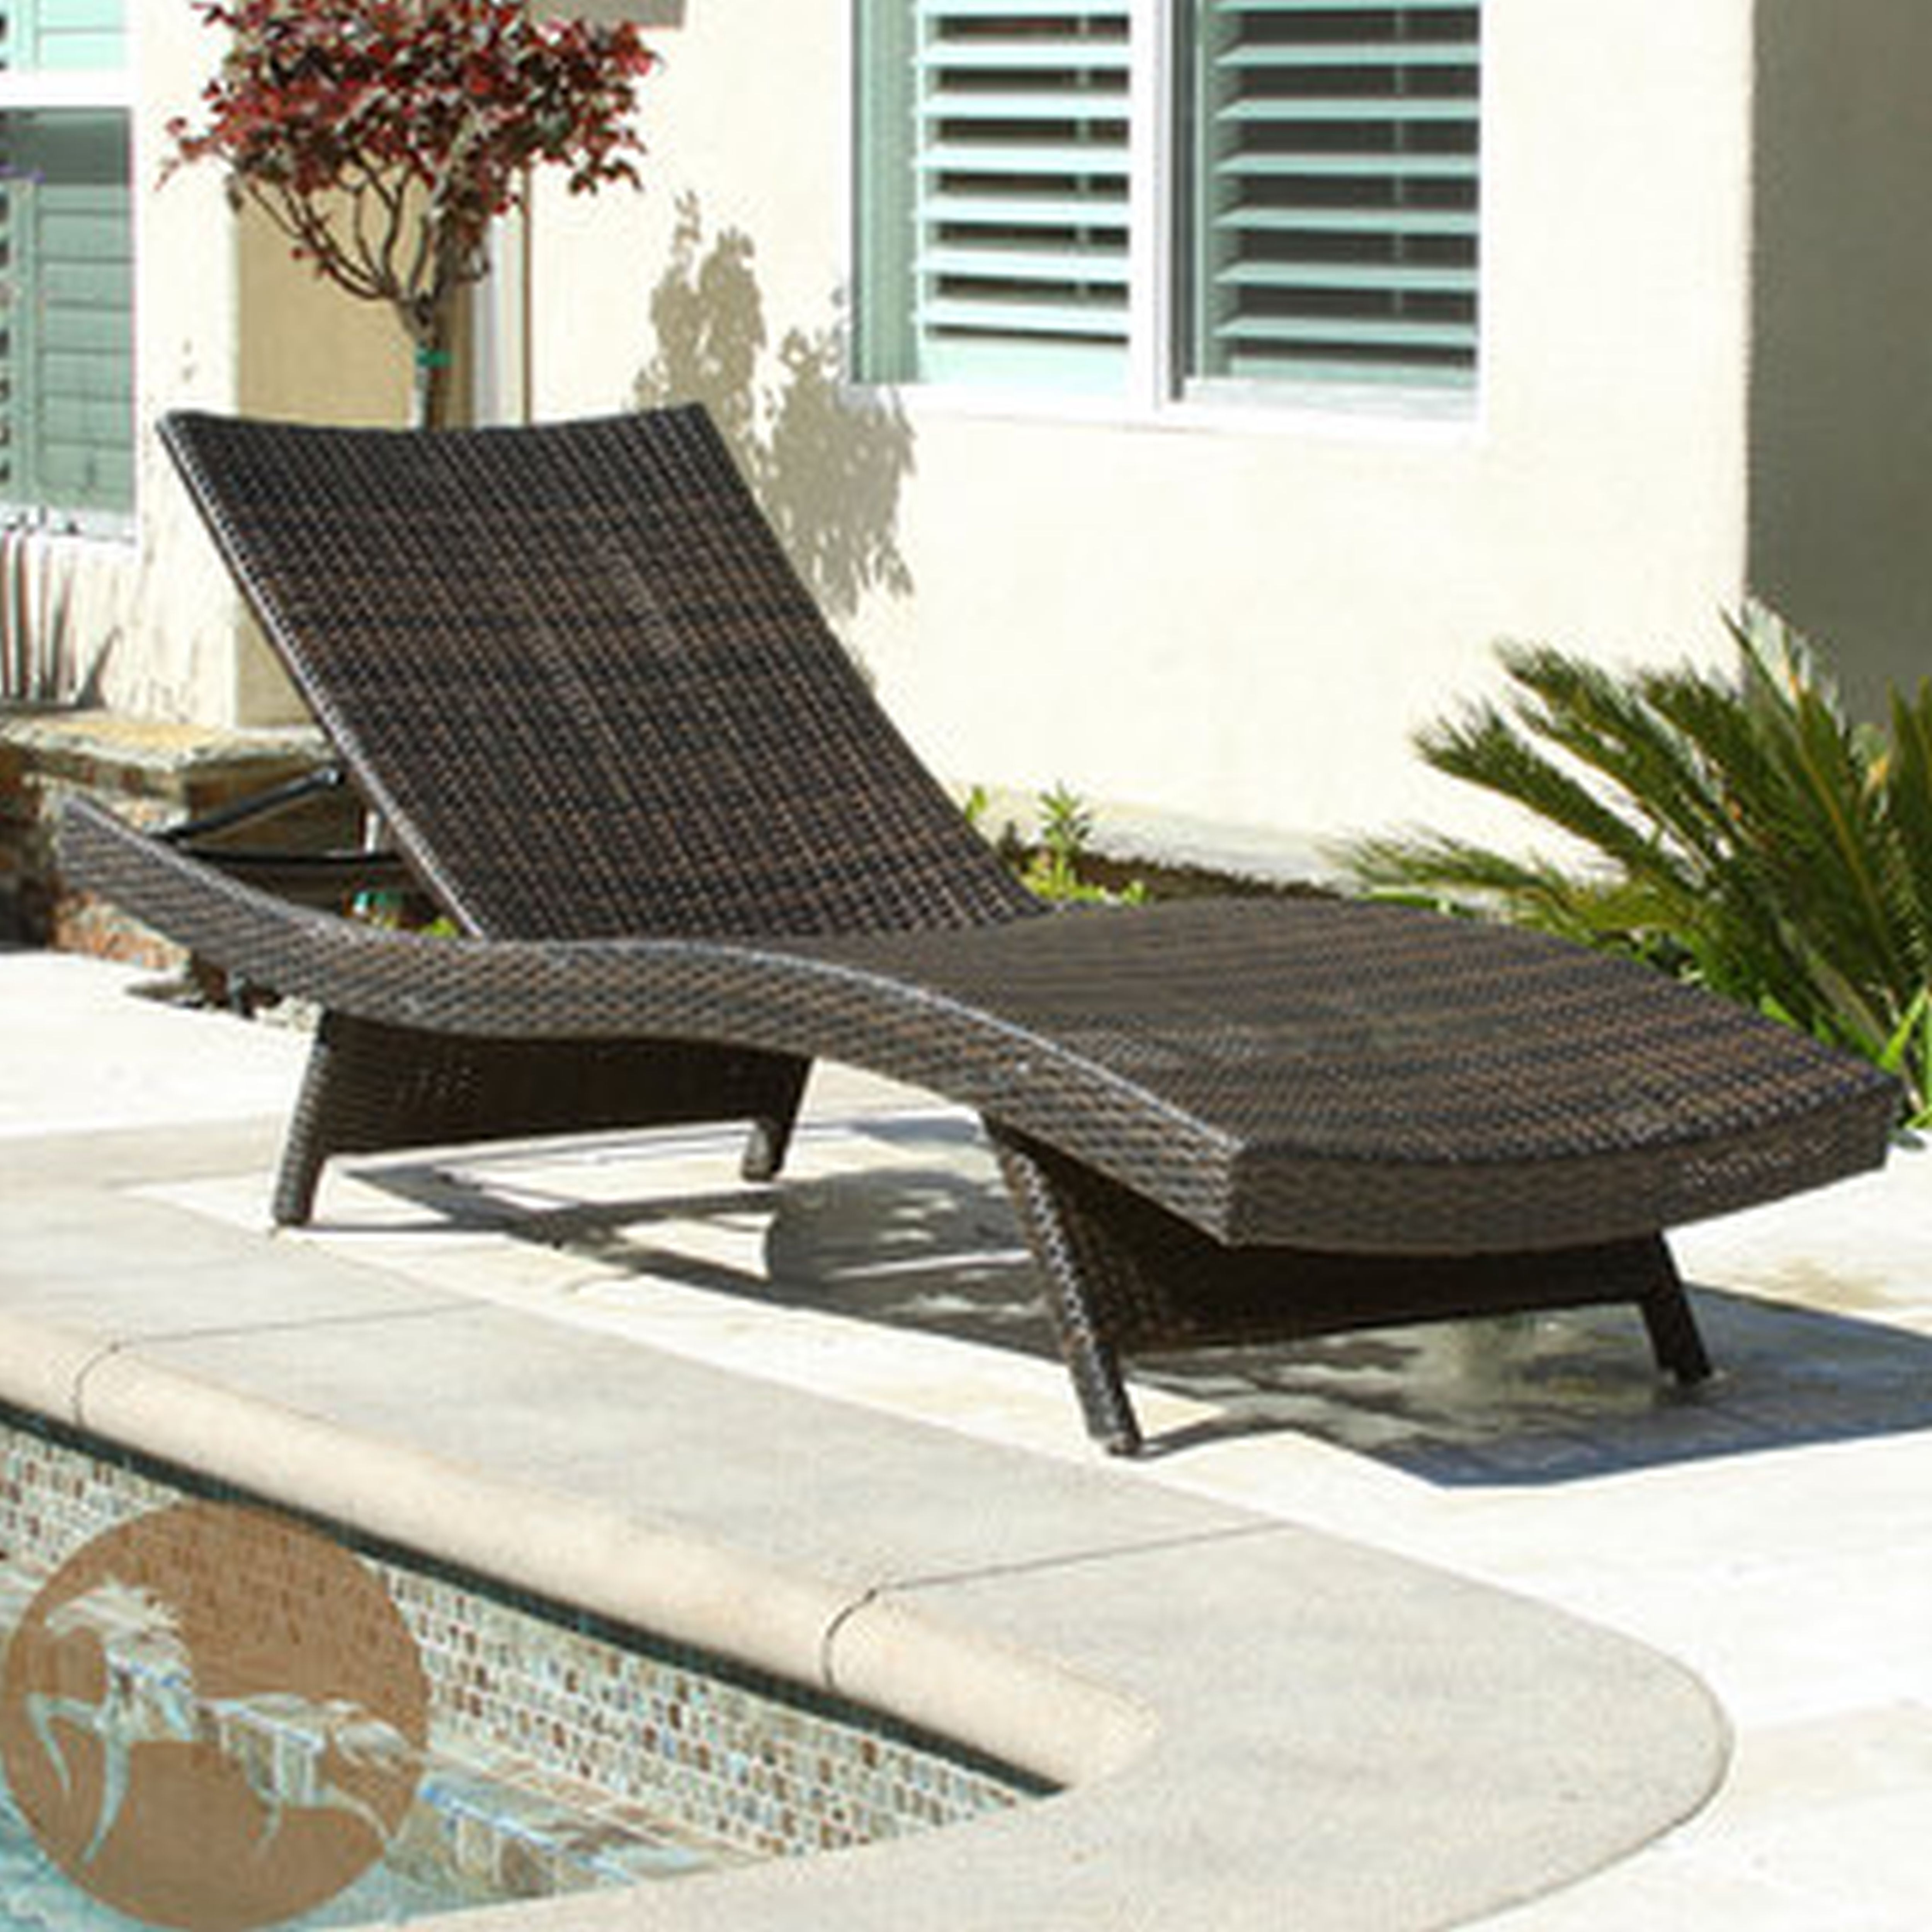 Most Popular Chaise Lounge Chairs At Walmart Throughout Outdoor : Chaise Lounge Sofa Lowes Patio Furniture Clearance (View 2 of 15)